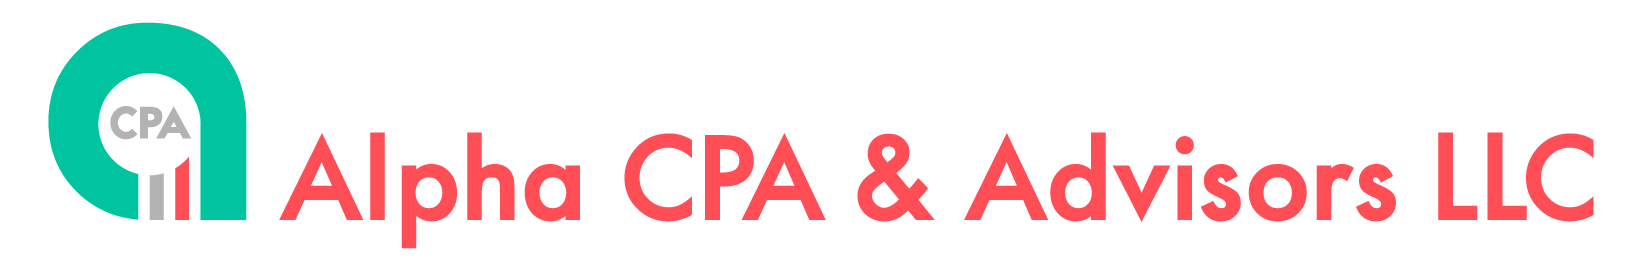 Alpha CPA & Advisors LLC logo horizontal